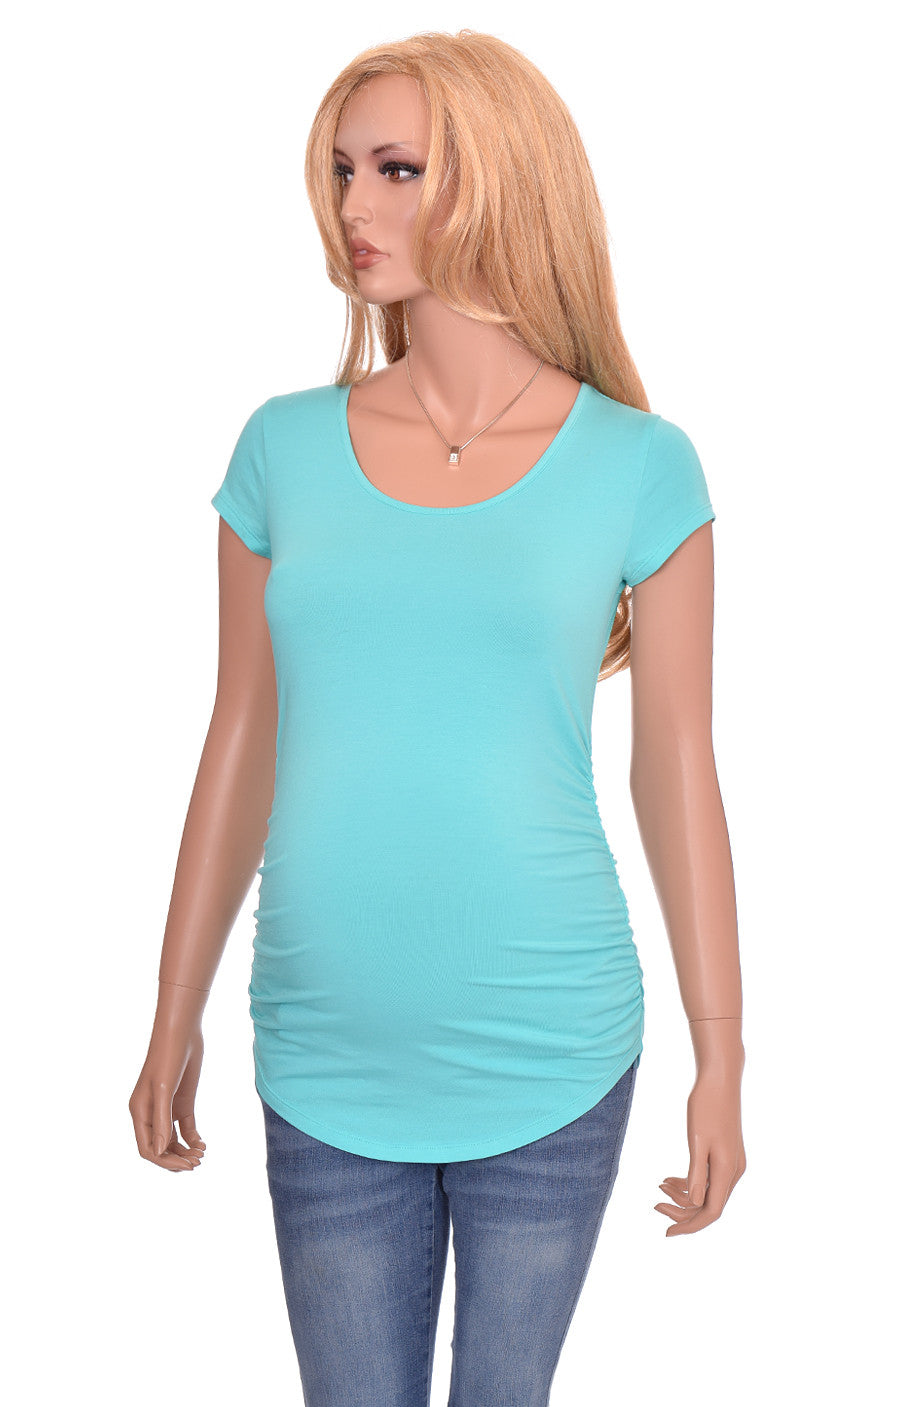 Wholesale maternity shirts tshirts blanks turquoise teal blue short sleeve cotton modal